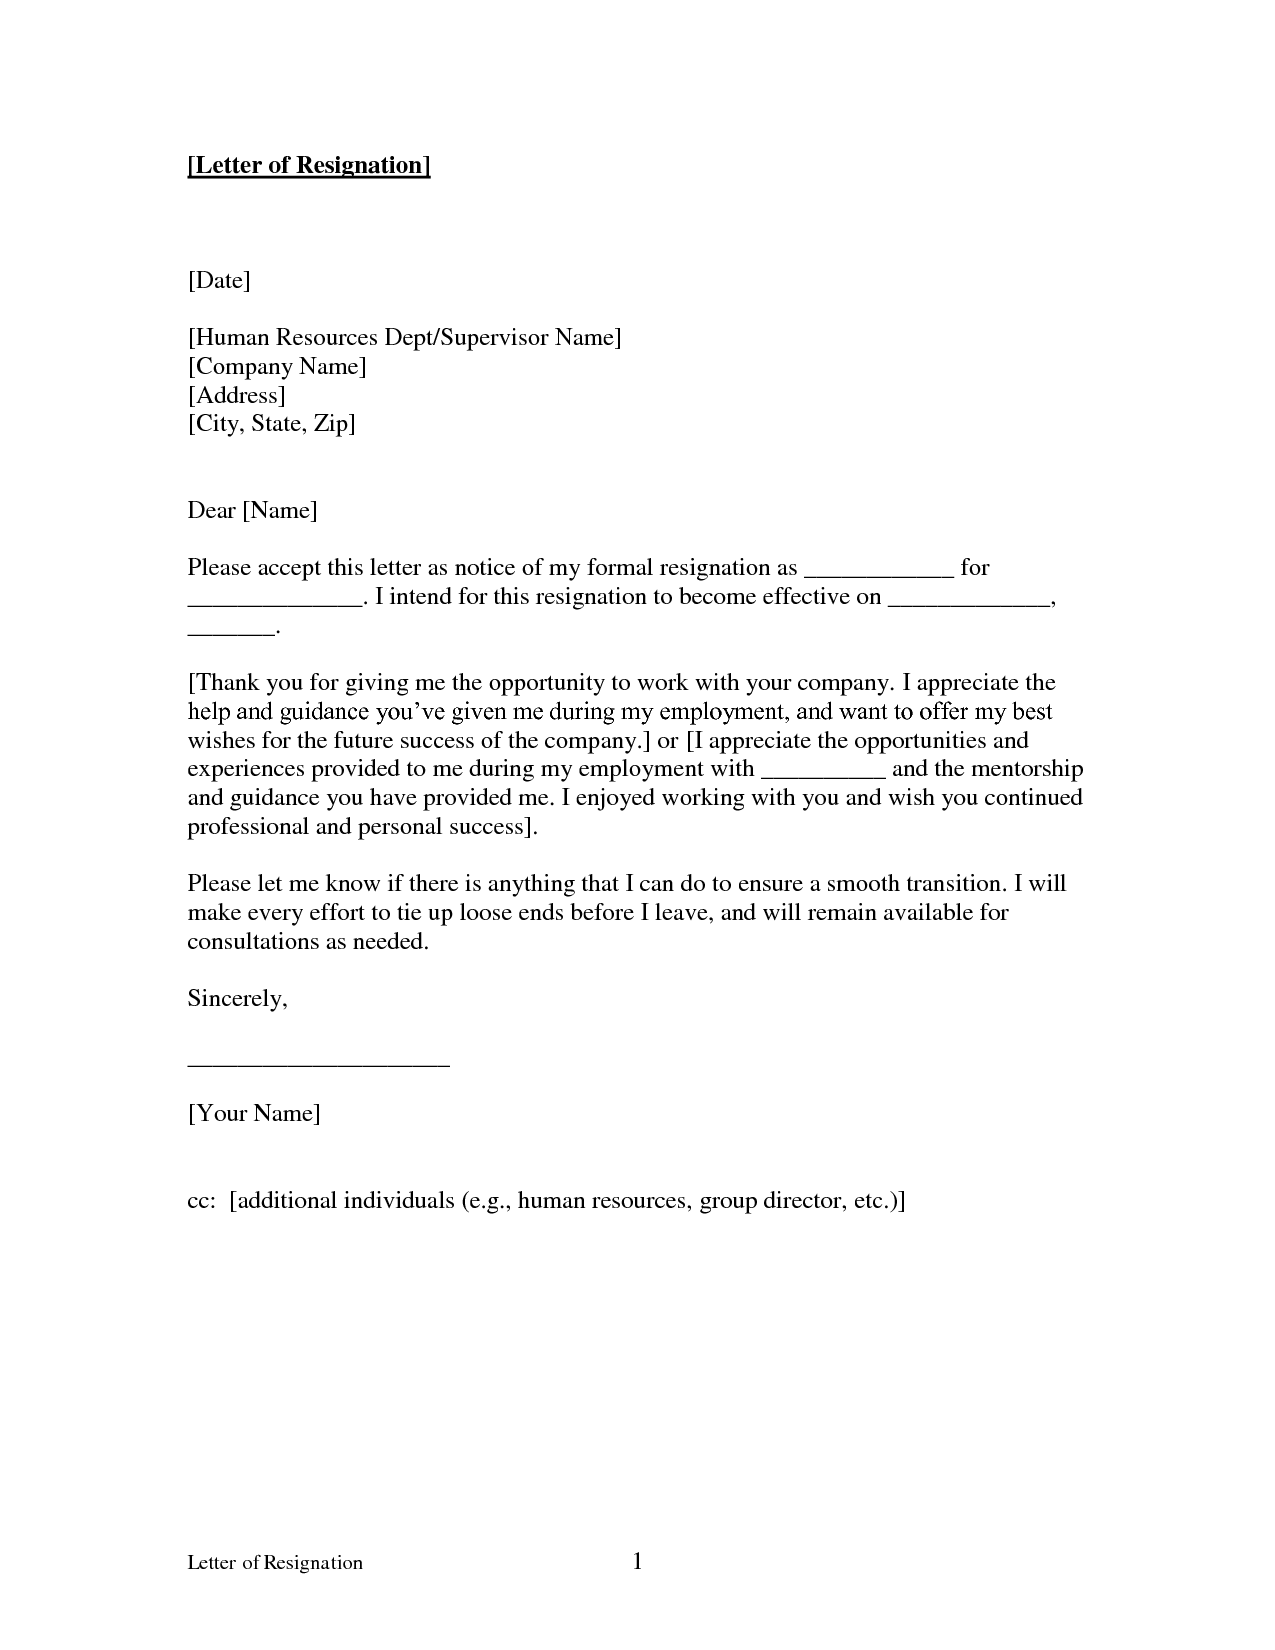 Letter Resignation Format Dos And Donts For A Resignation